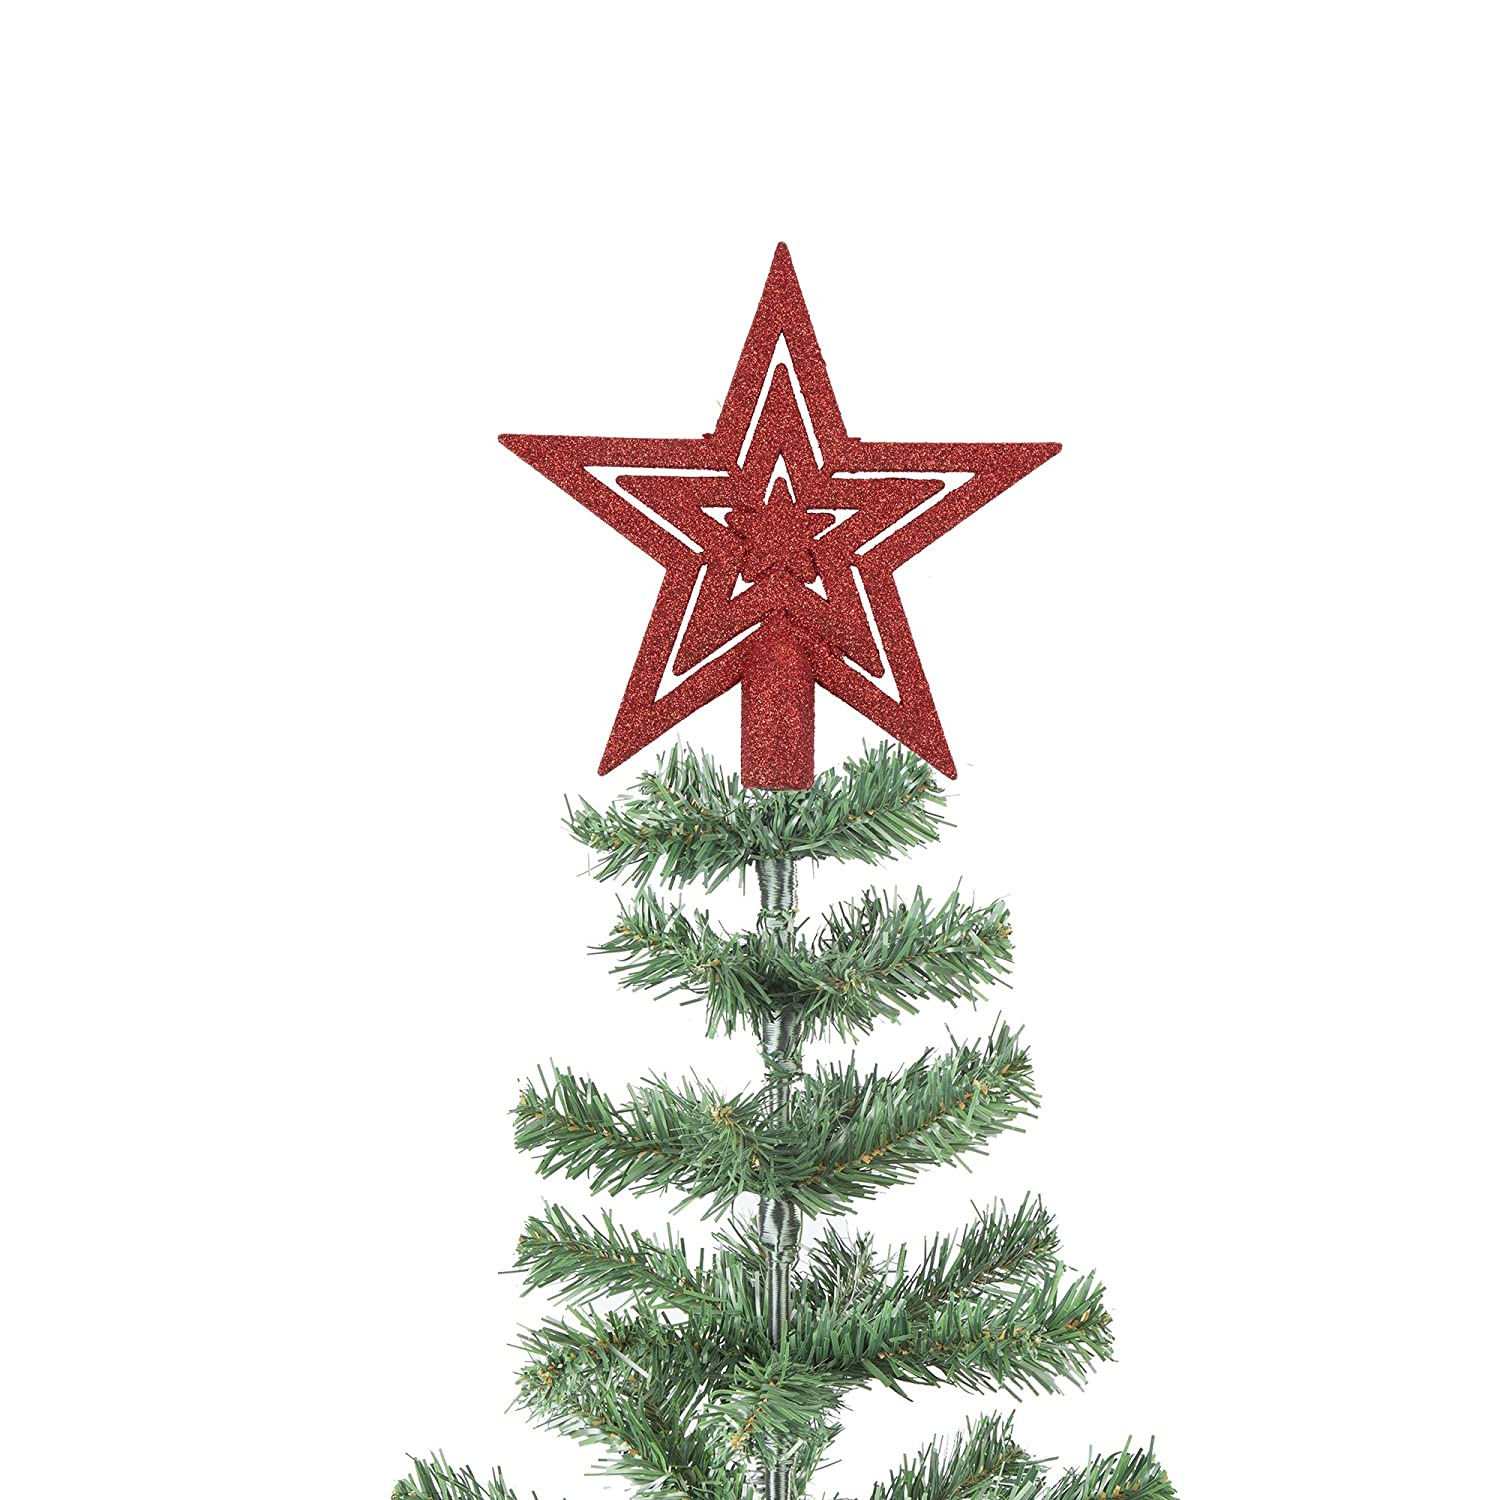 20cm Glitter Star Christmas Tree Topper Decoration Ornament (Gold) Robelli